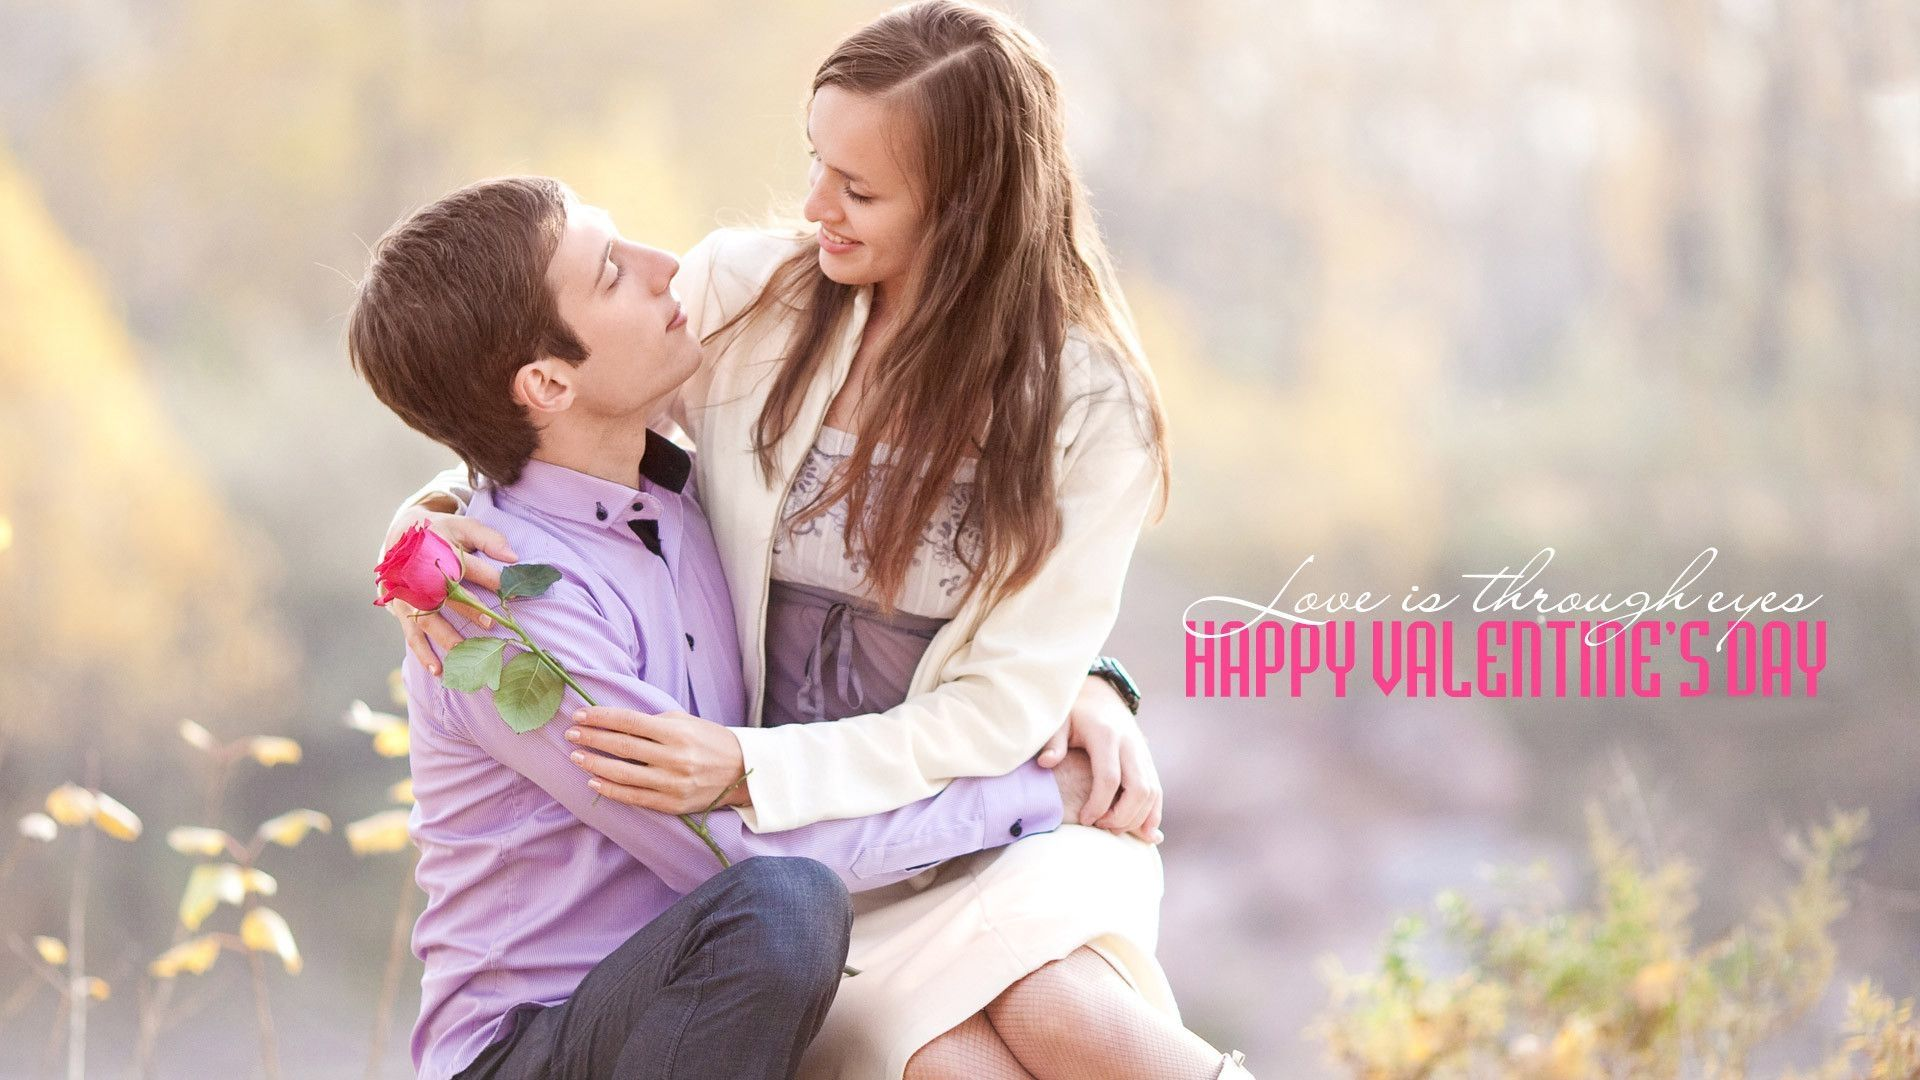 new wallpaper of love cute couple wallpaper of love cute couple hd